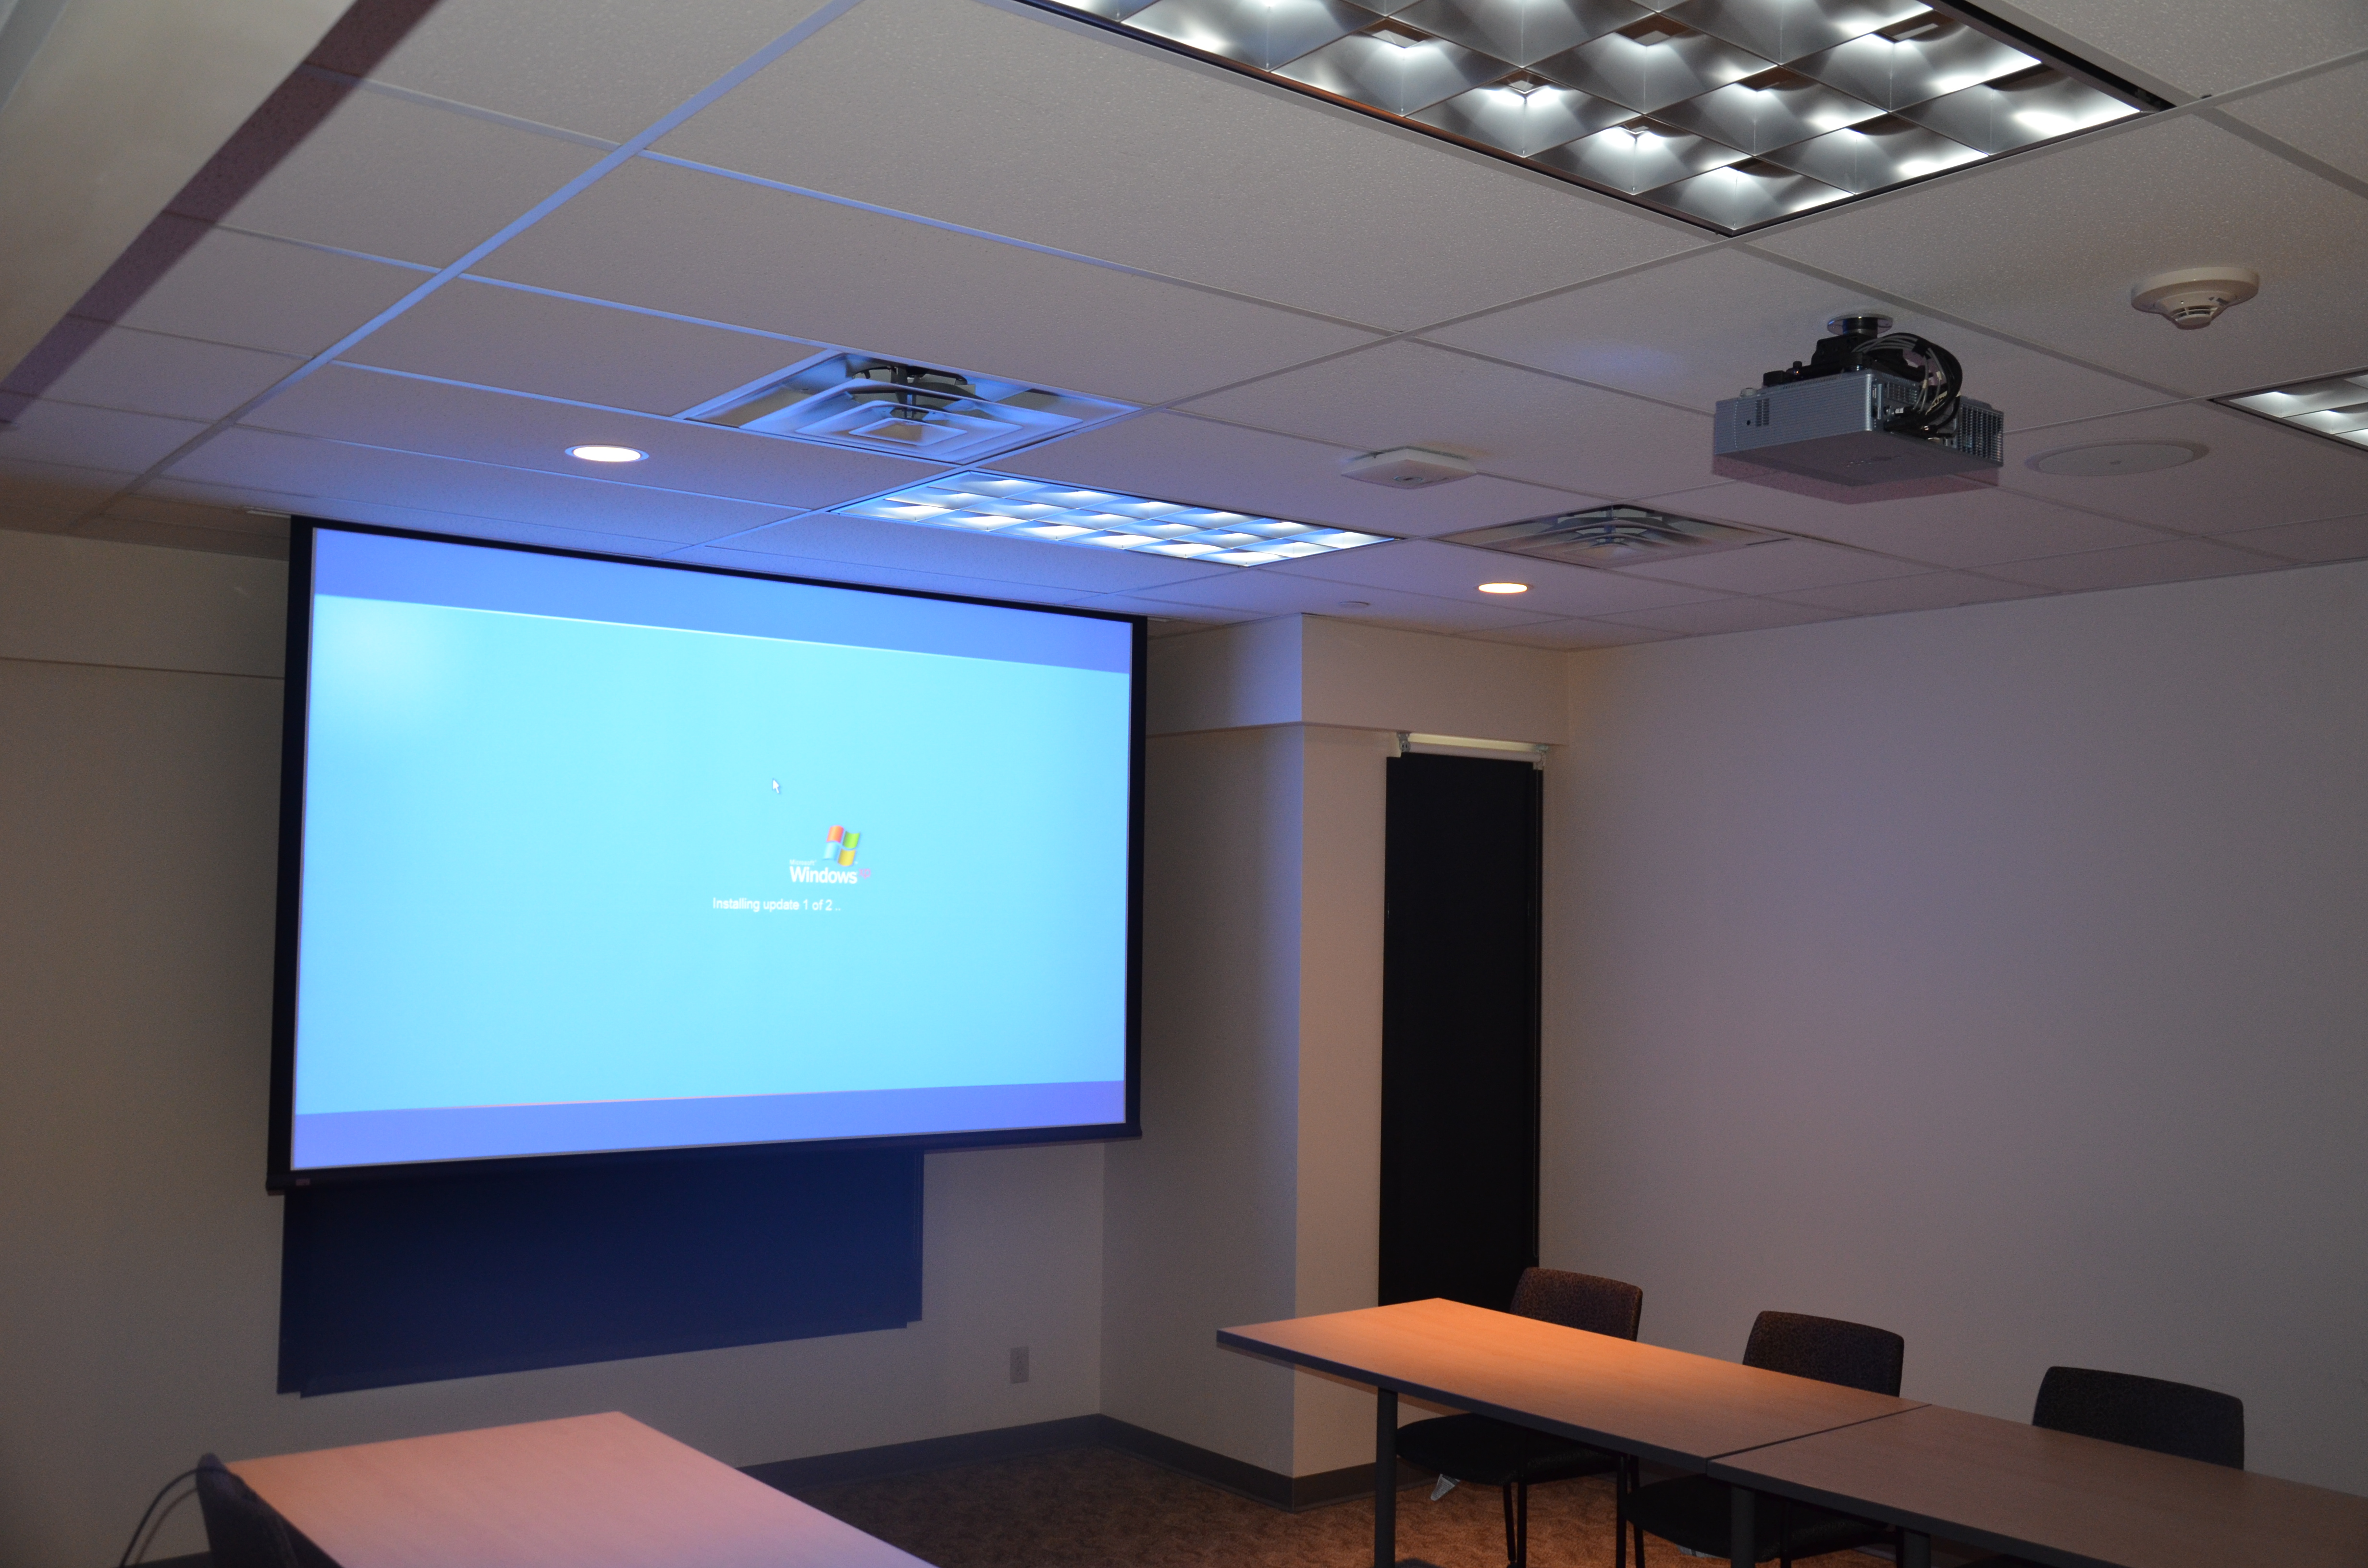 conference-room-projector